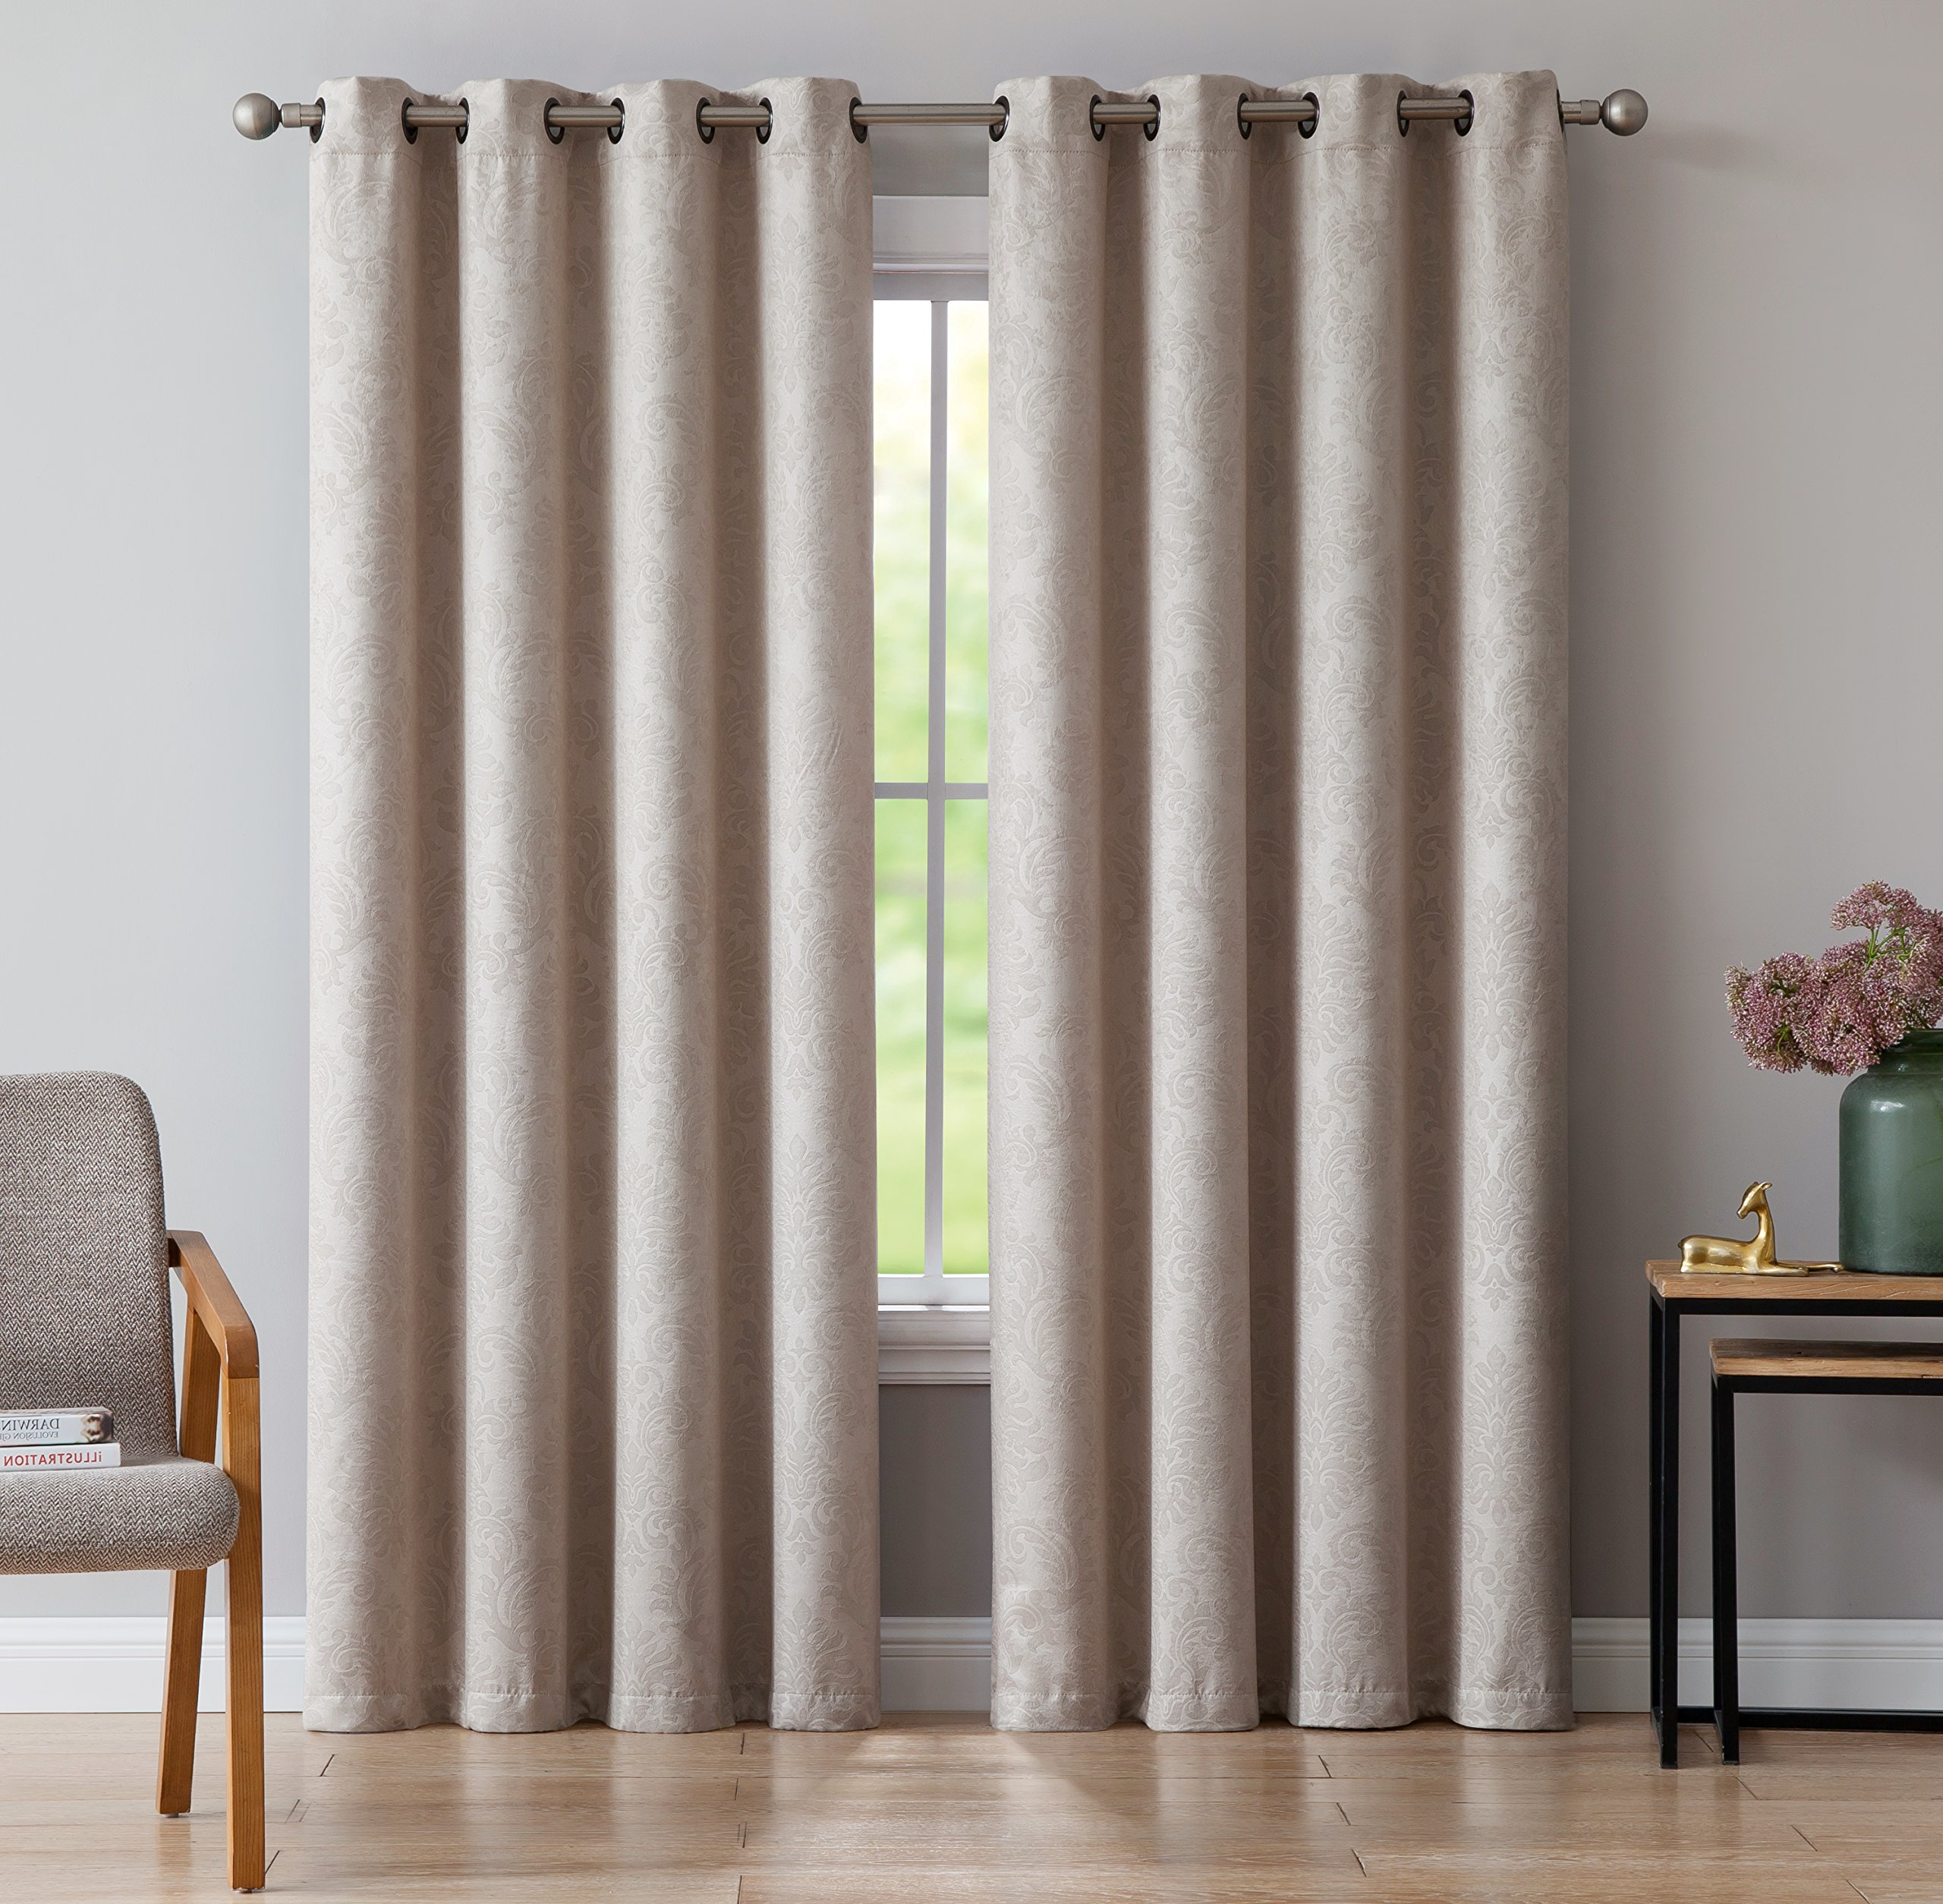 Most Popular Embossed Thermal Weaved Blackout Grommet Drapery Curtains Inside Details About Evelyn – Embossed Thermal Weaved Blackout Curtain With 8 Grommets – Room (Gallery 2 of 20)